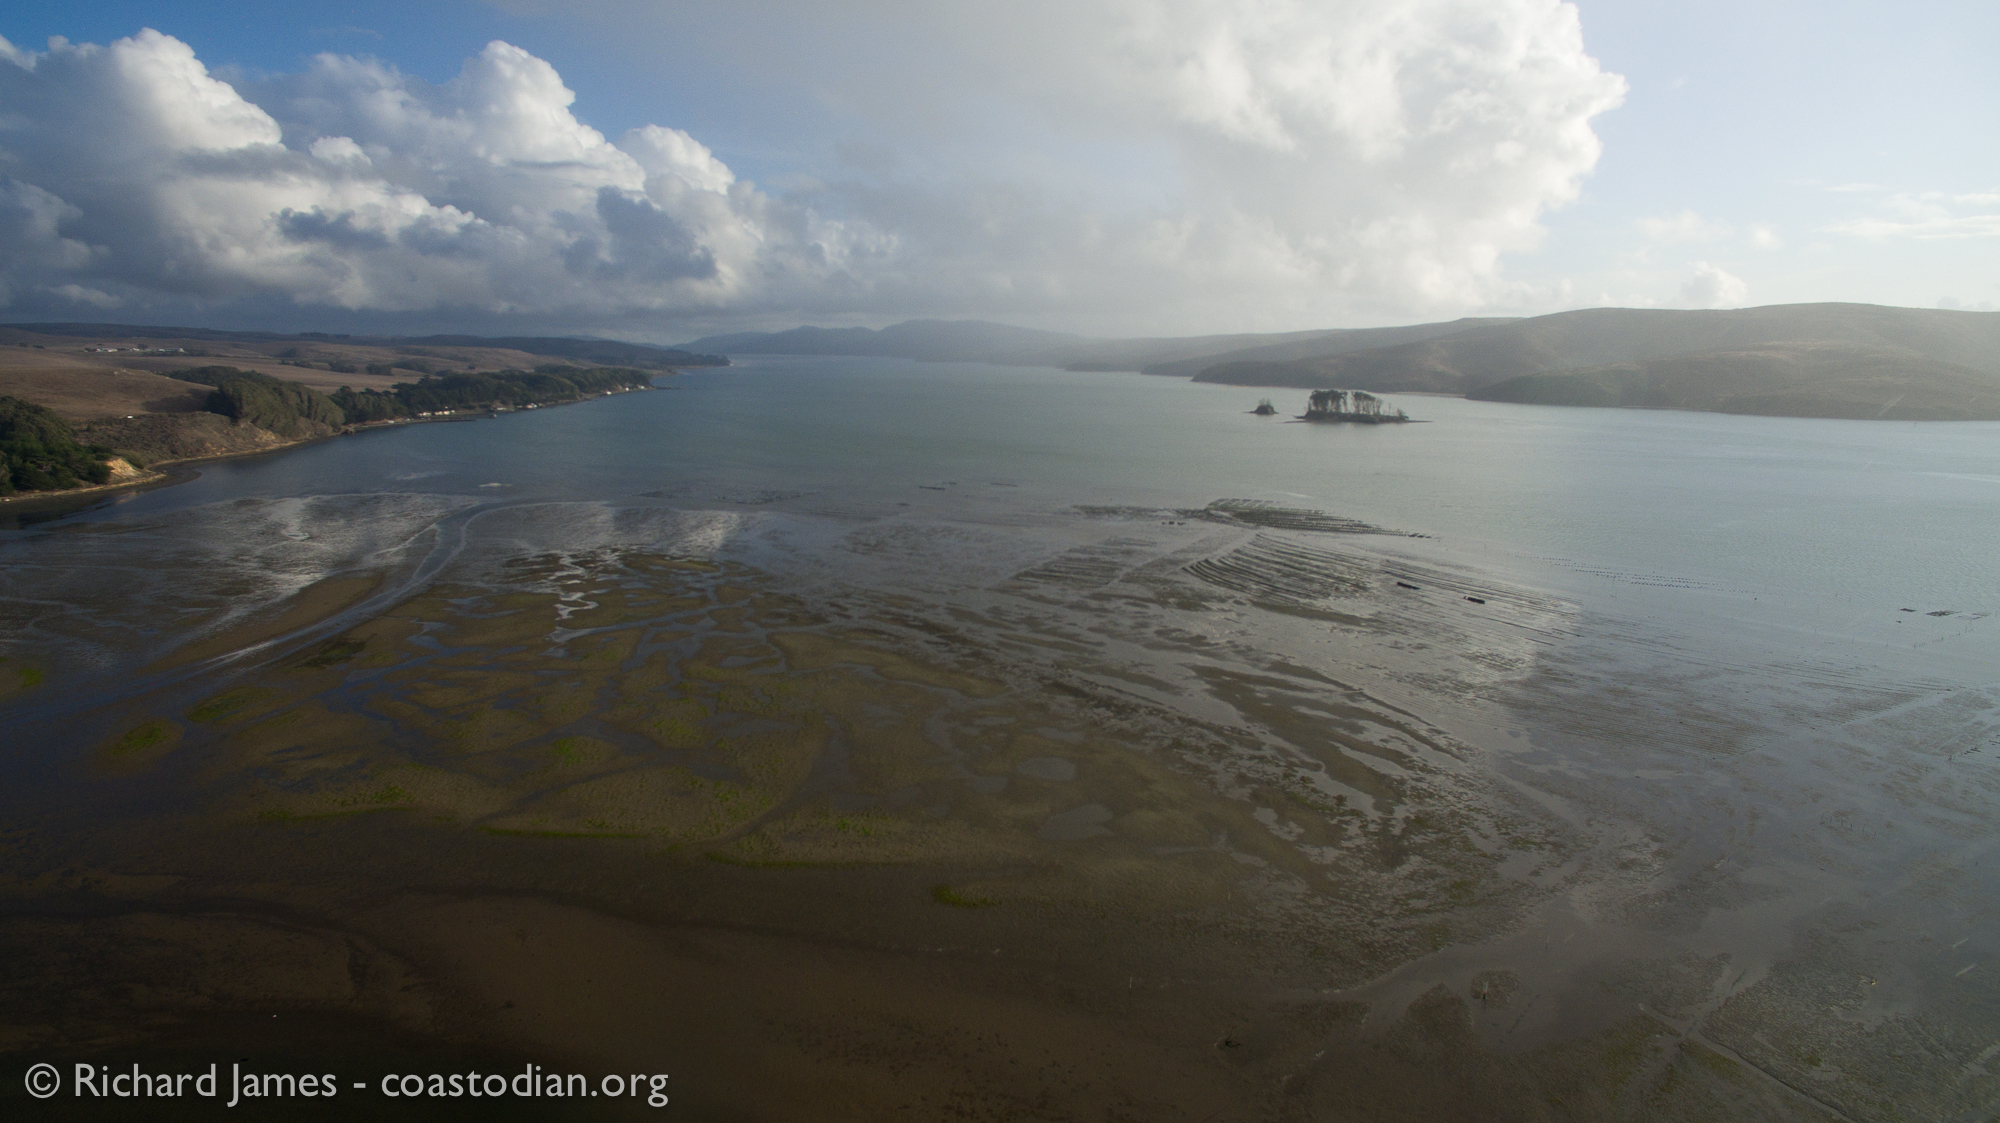 Tomales Bay deserves strong protection so that future generations can enjoy this jewel.